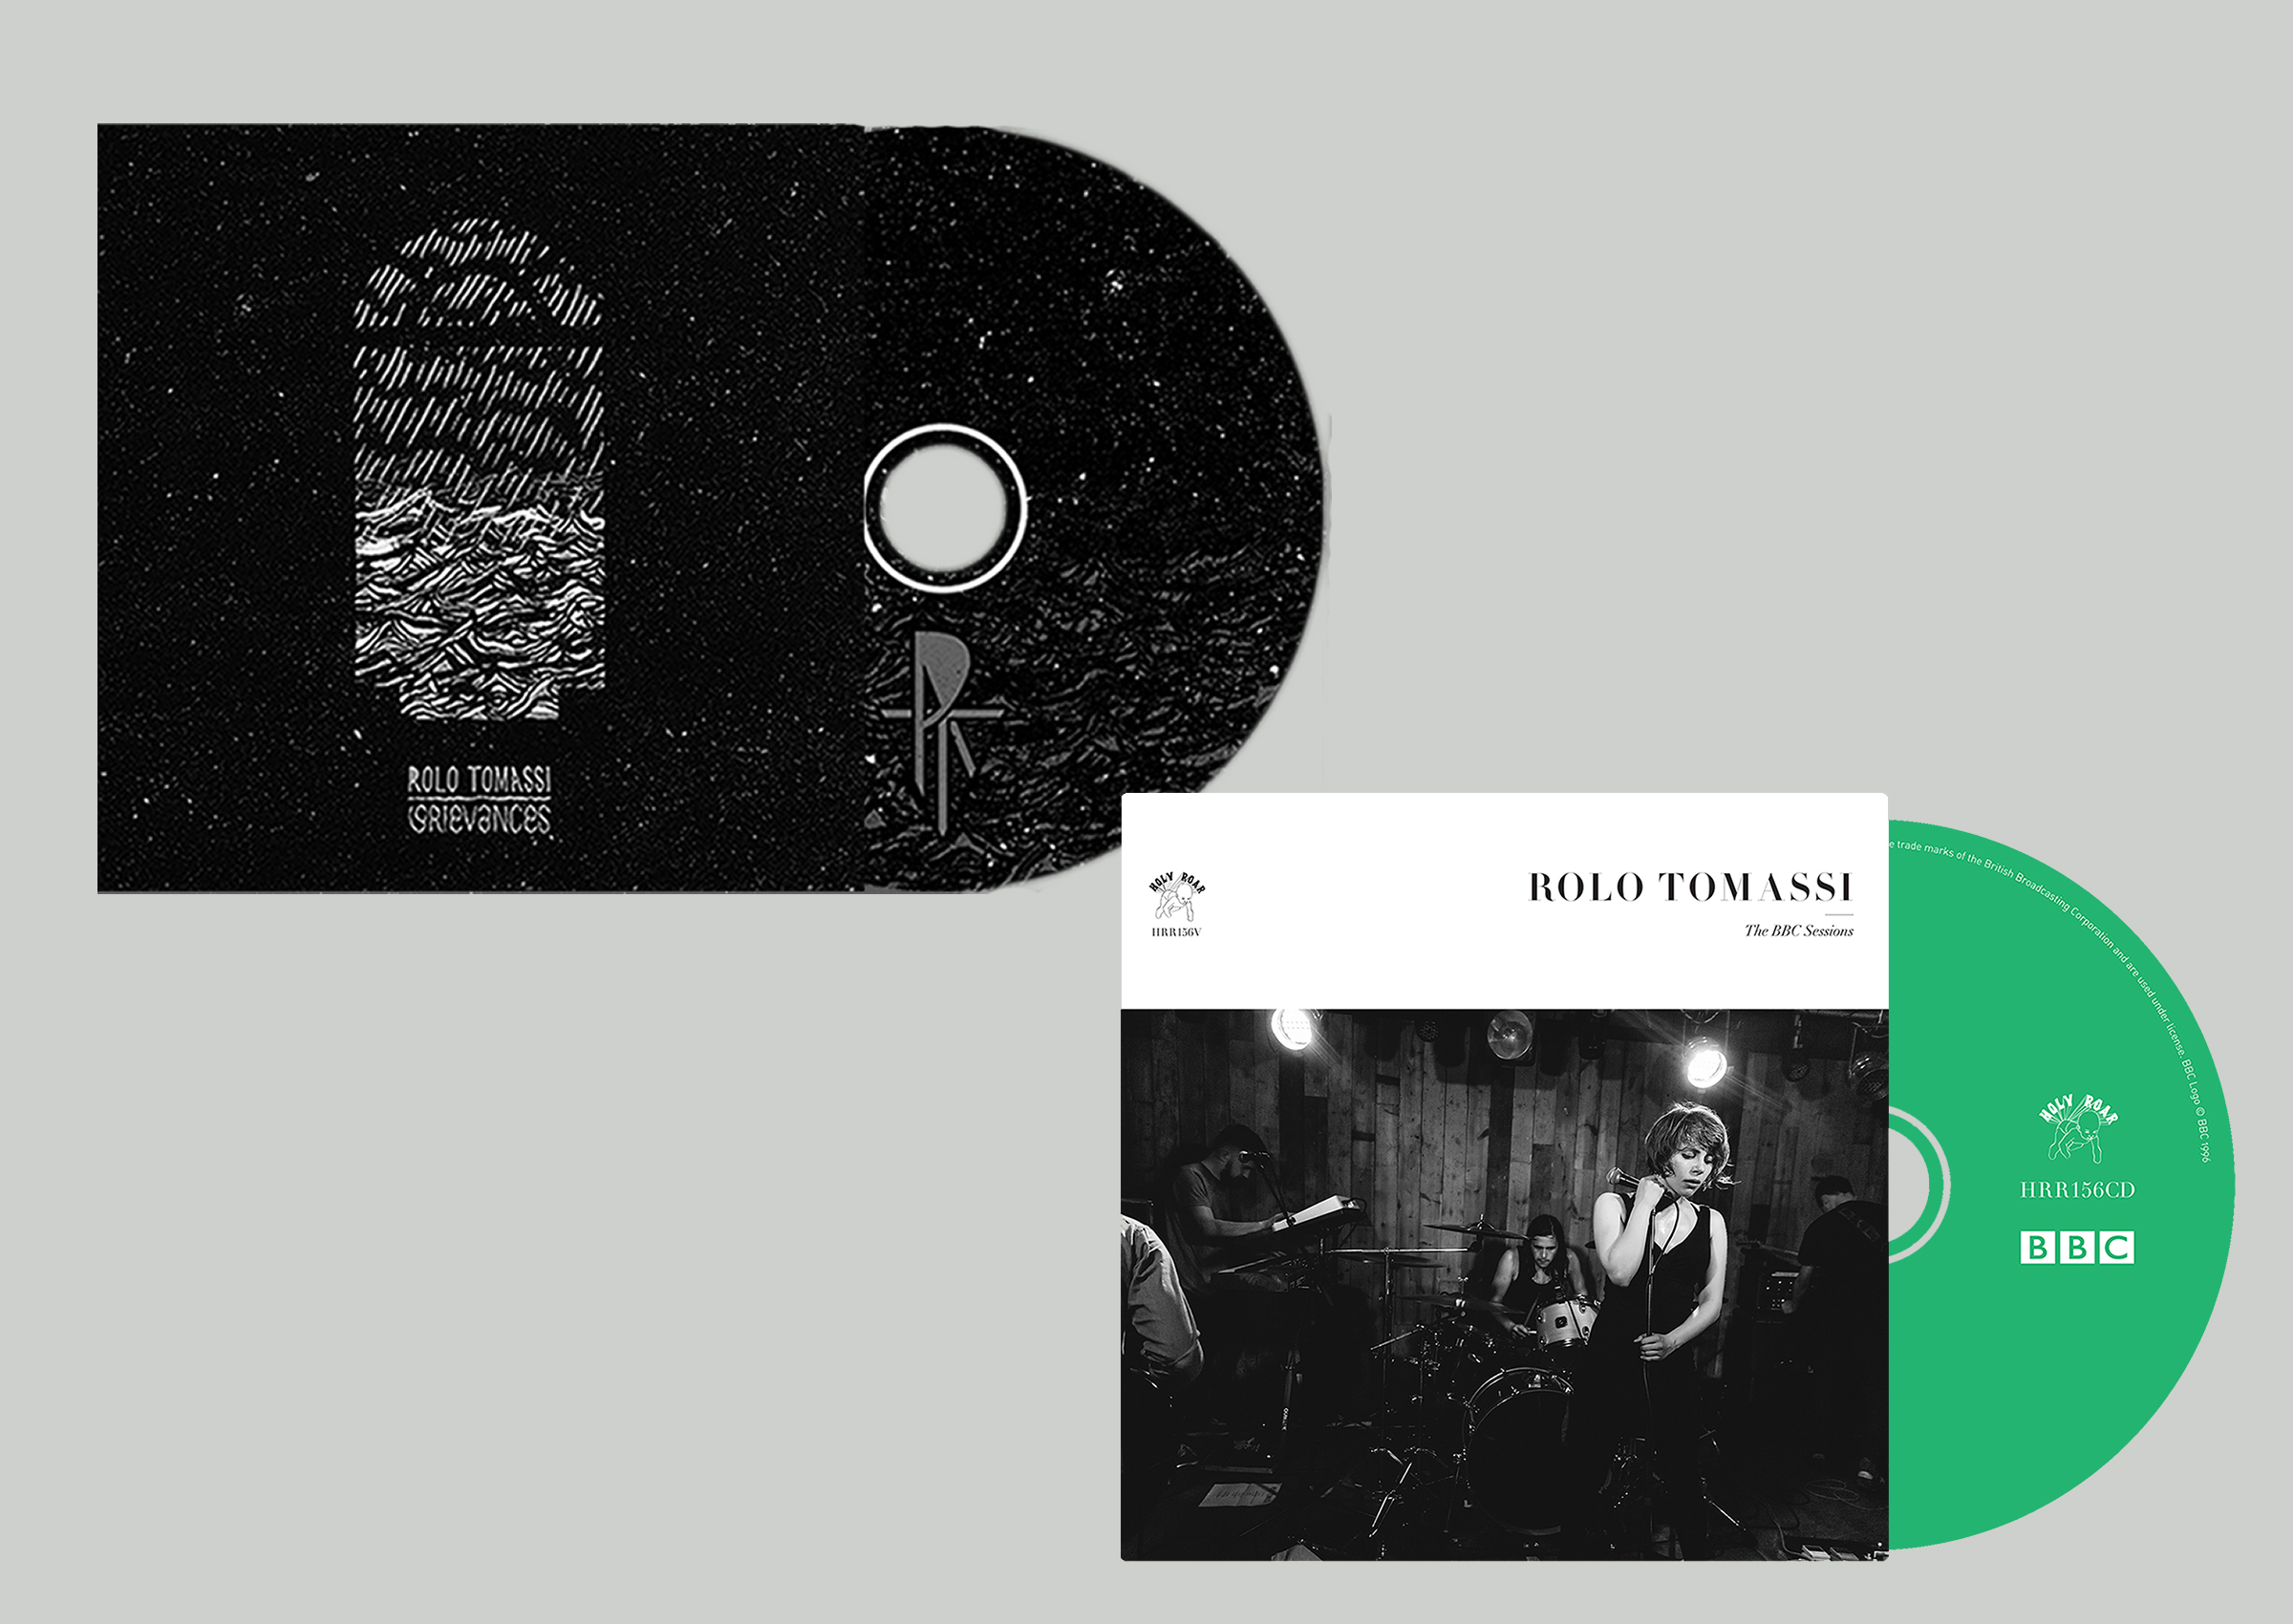 Rolo Tomassi - BBC Sessions + Grievances CD bundle